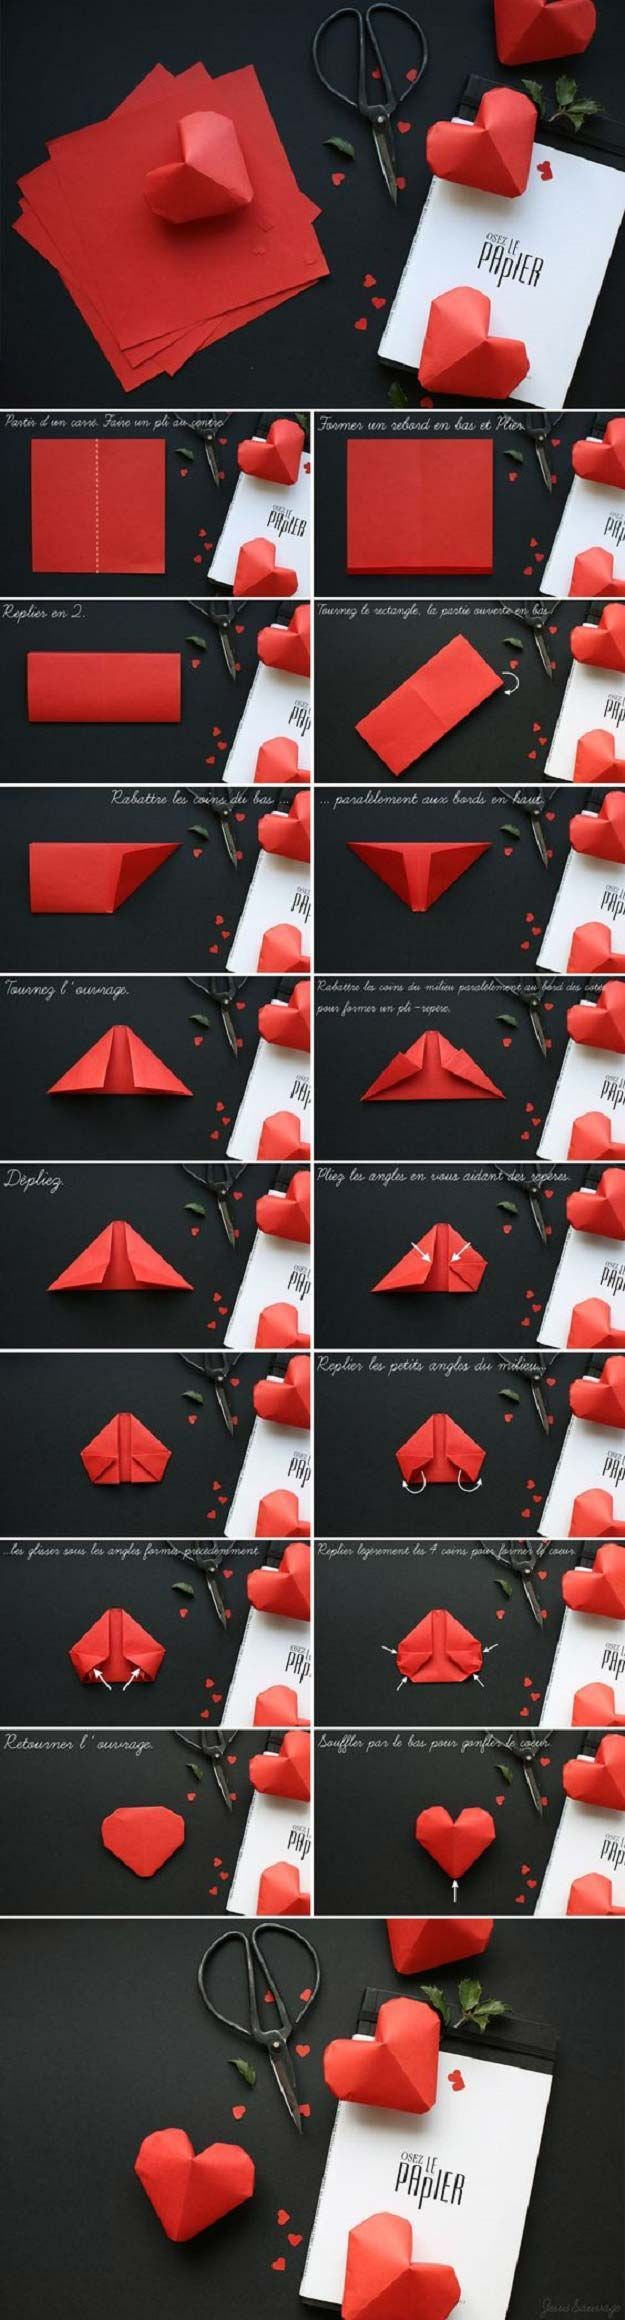 Best Origami Tutorials – Heart Origami – Easy DIY Origami Tutorial Projects for …